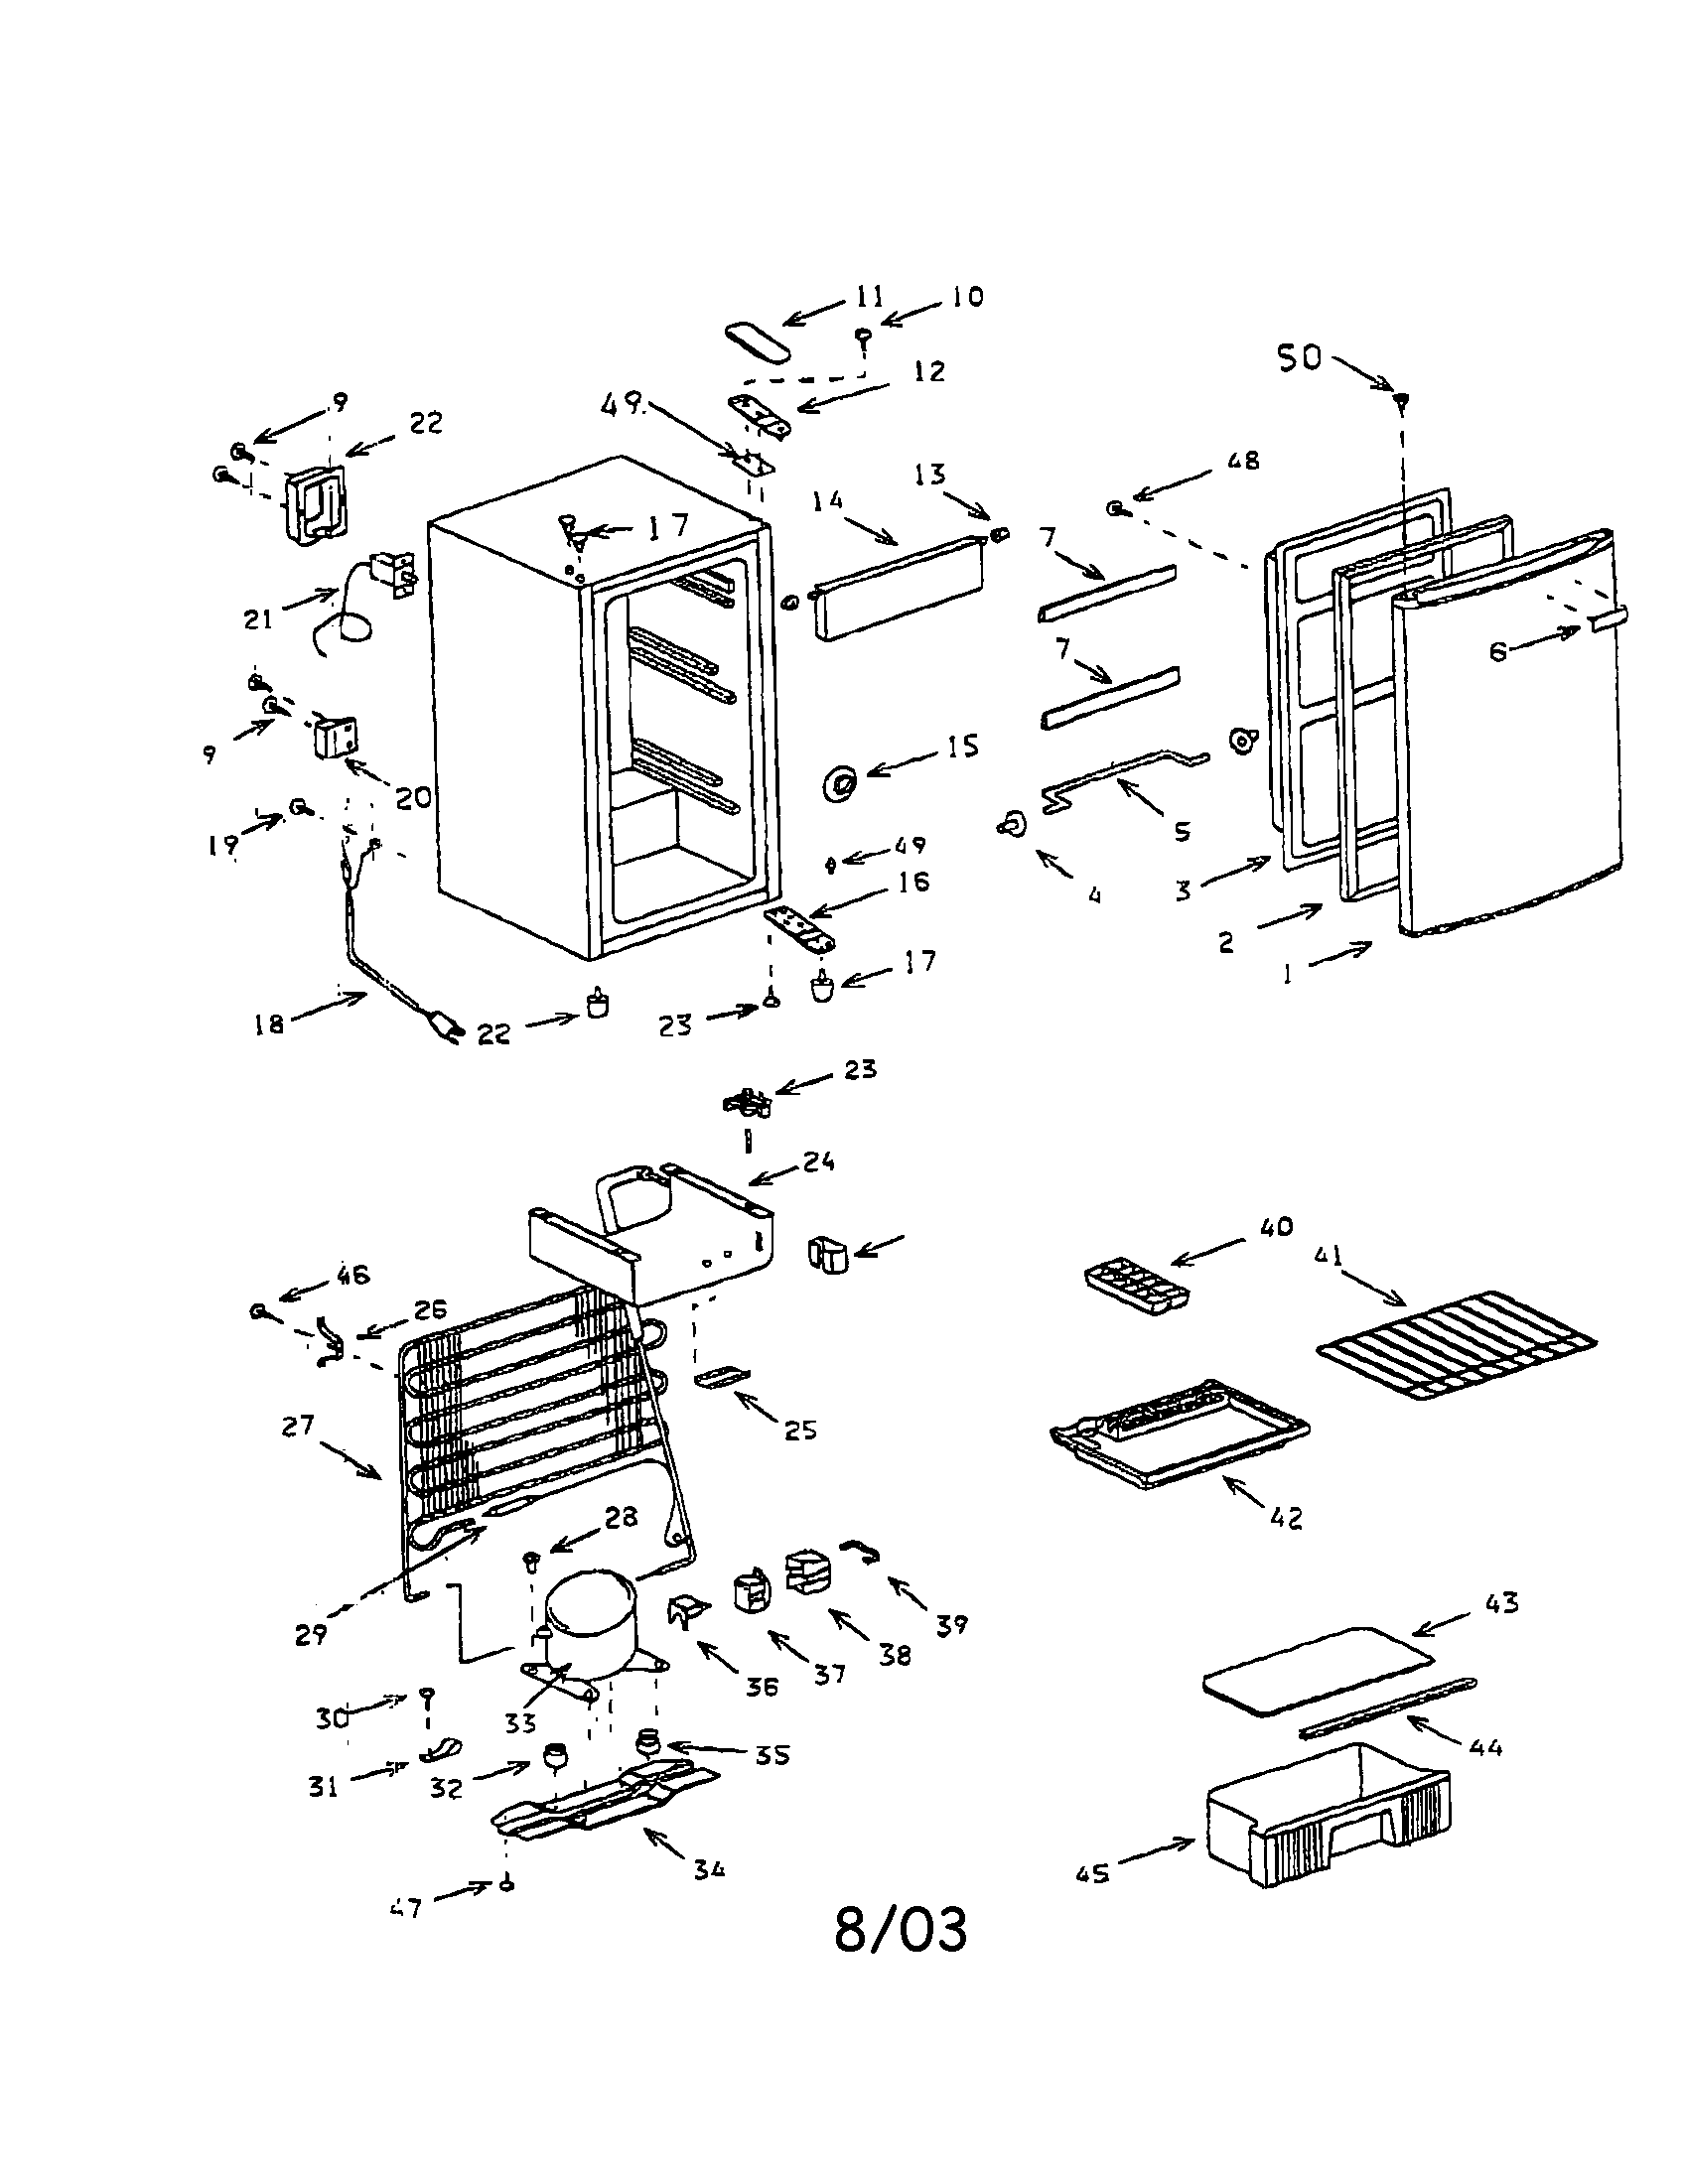 hight resolution of compact refrigerator diagram and parts list for sanyo refrigerator